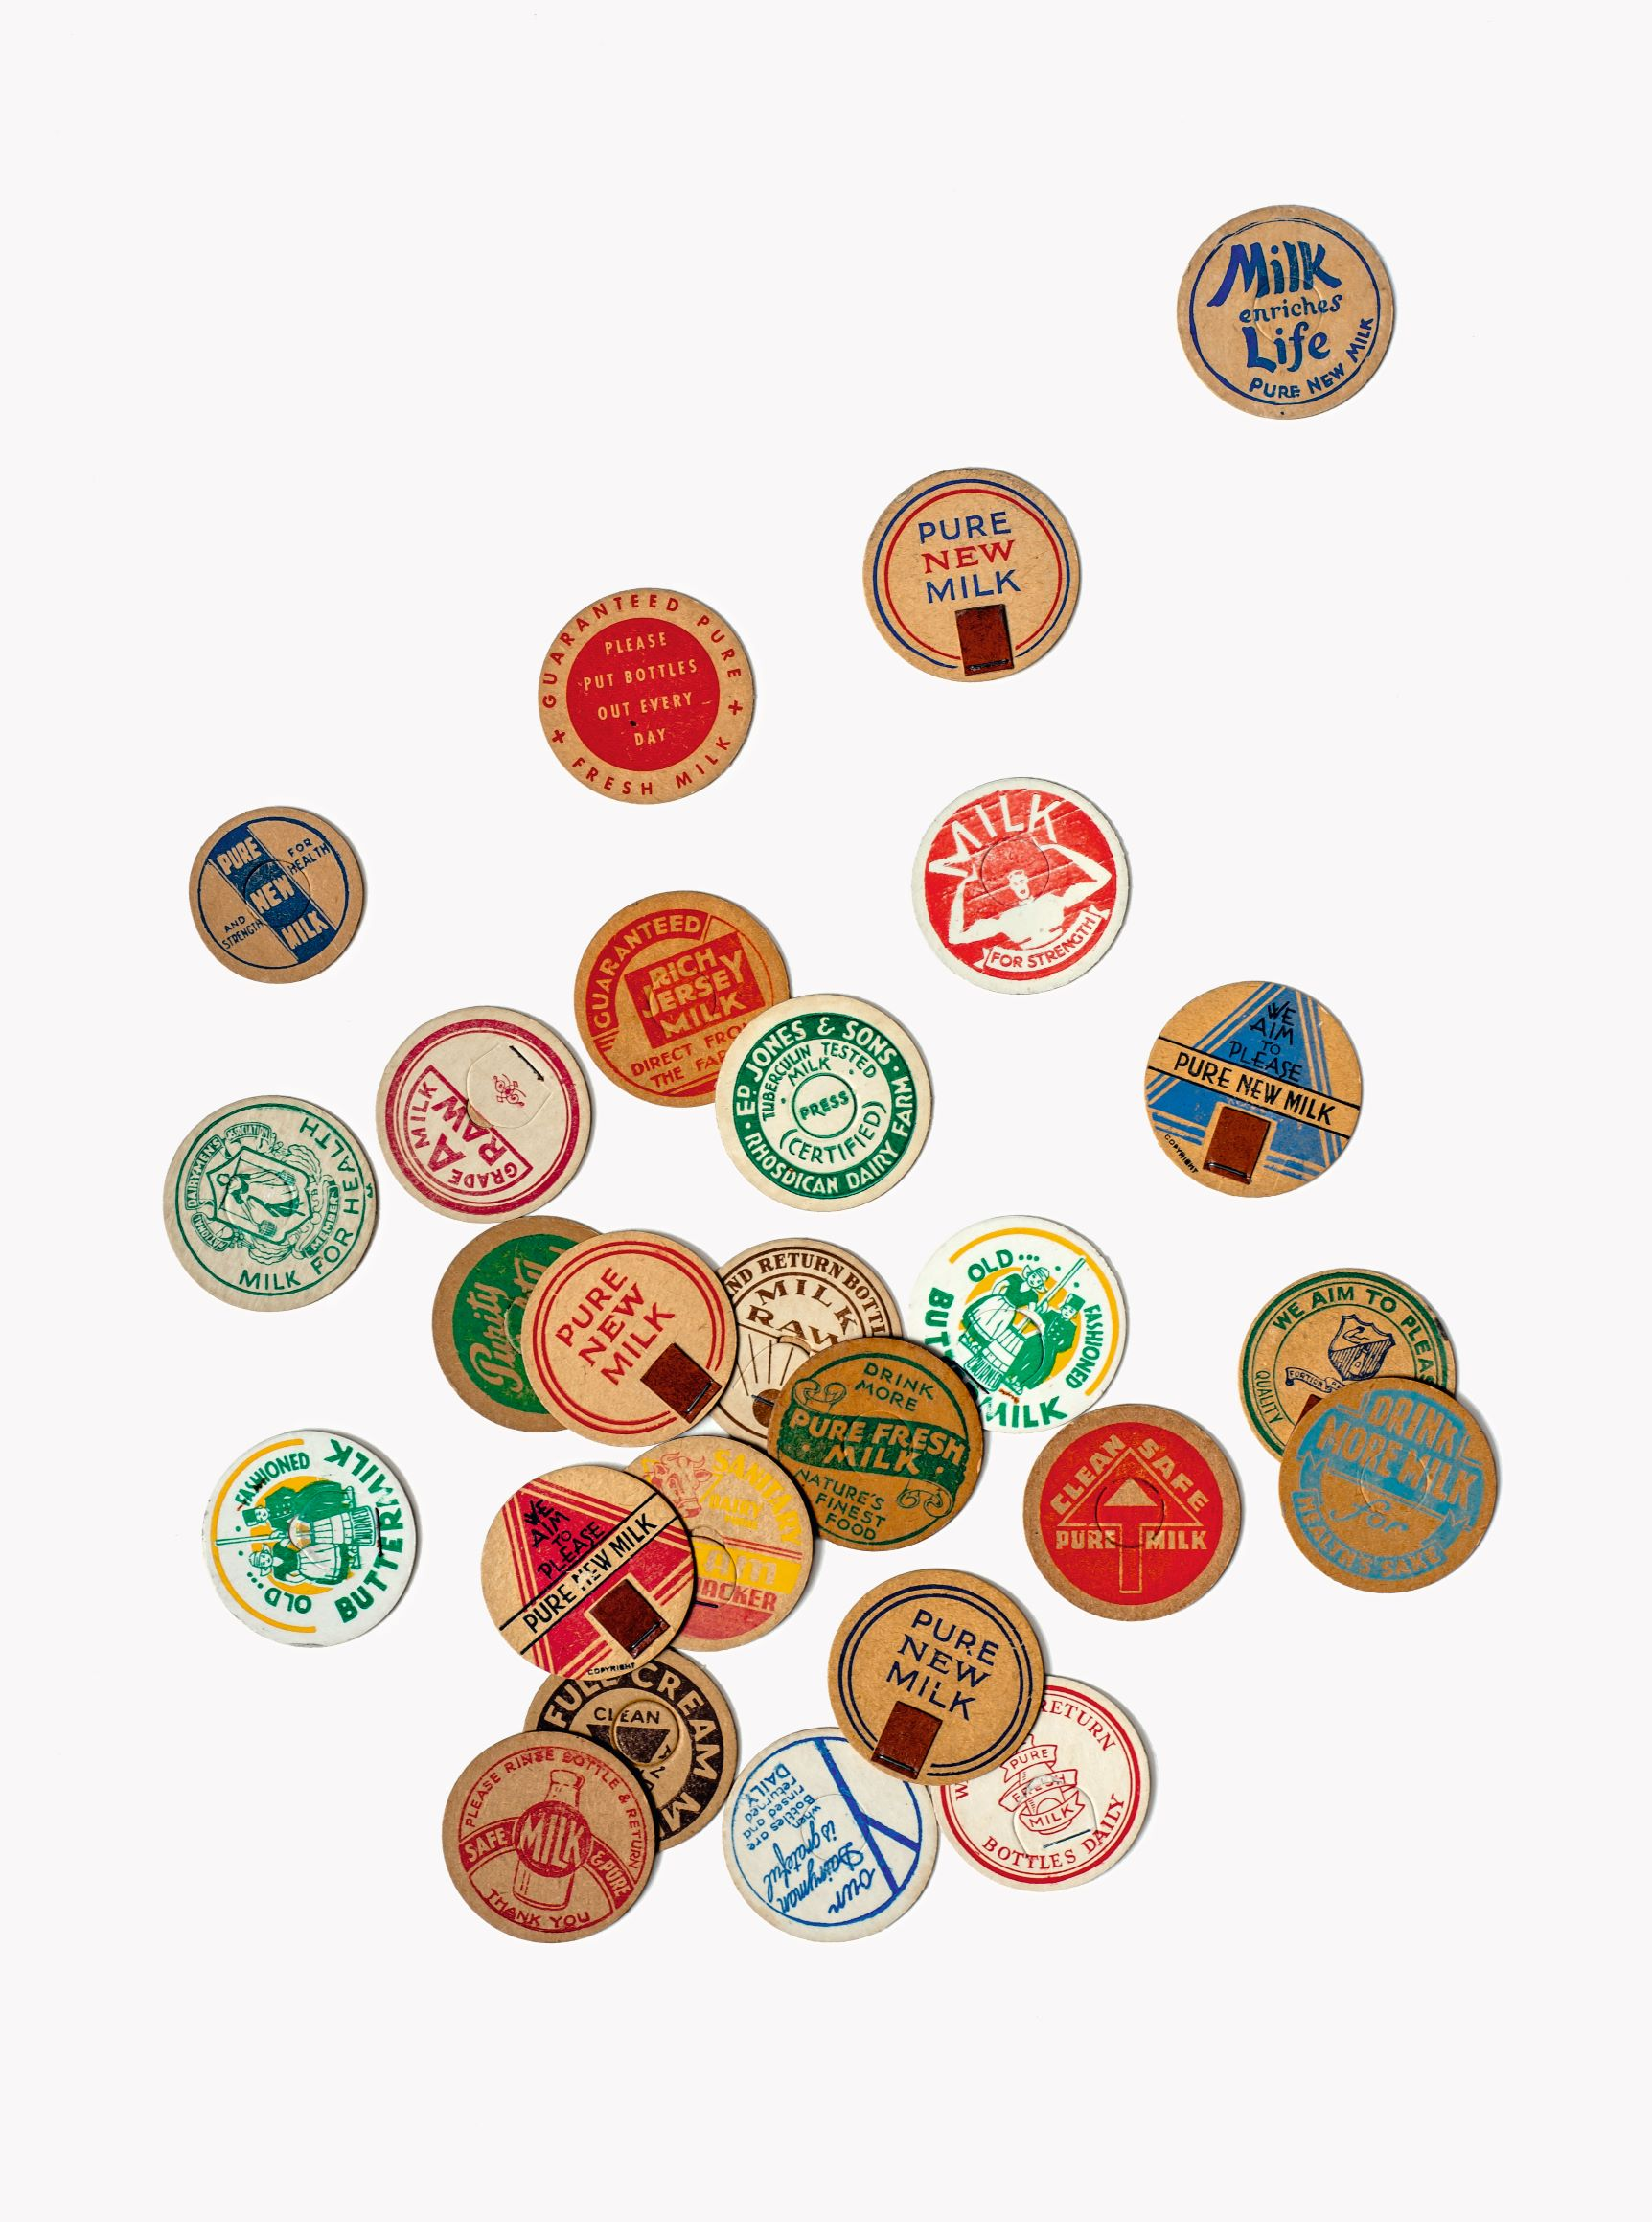 Milk-bottle Tops (England, 1950s), 1½ in. (3.8 cm) diameter, photograph by Flora Fricker, collection of Annie Atkins